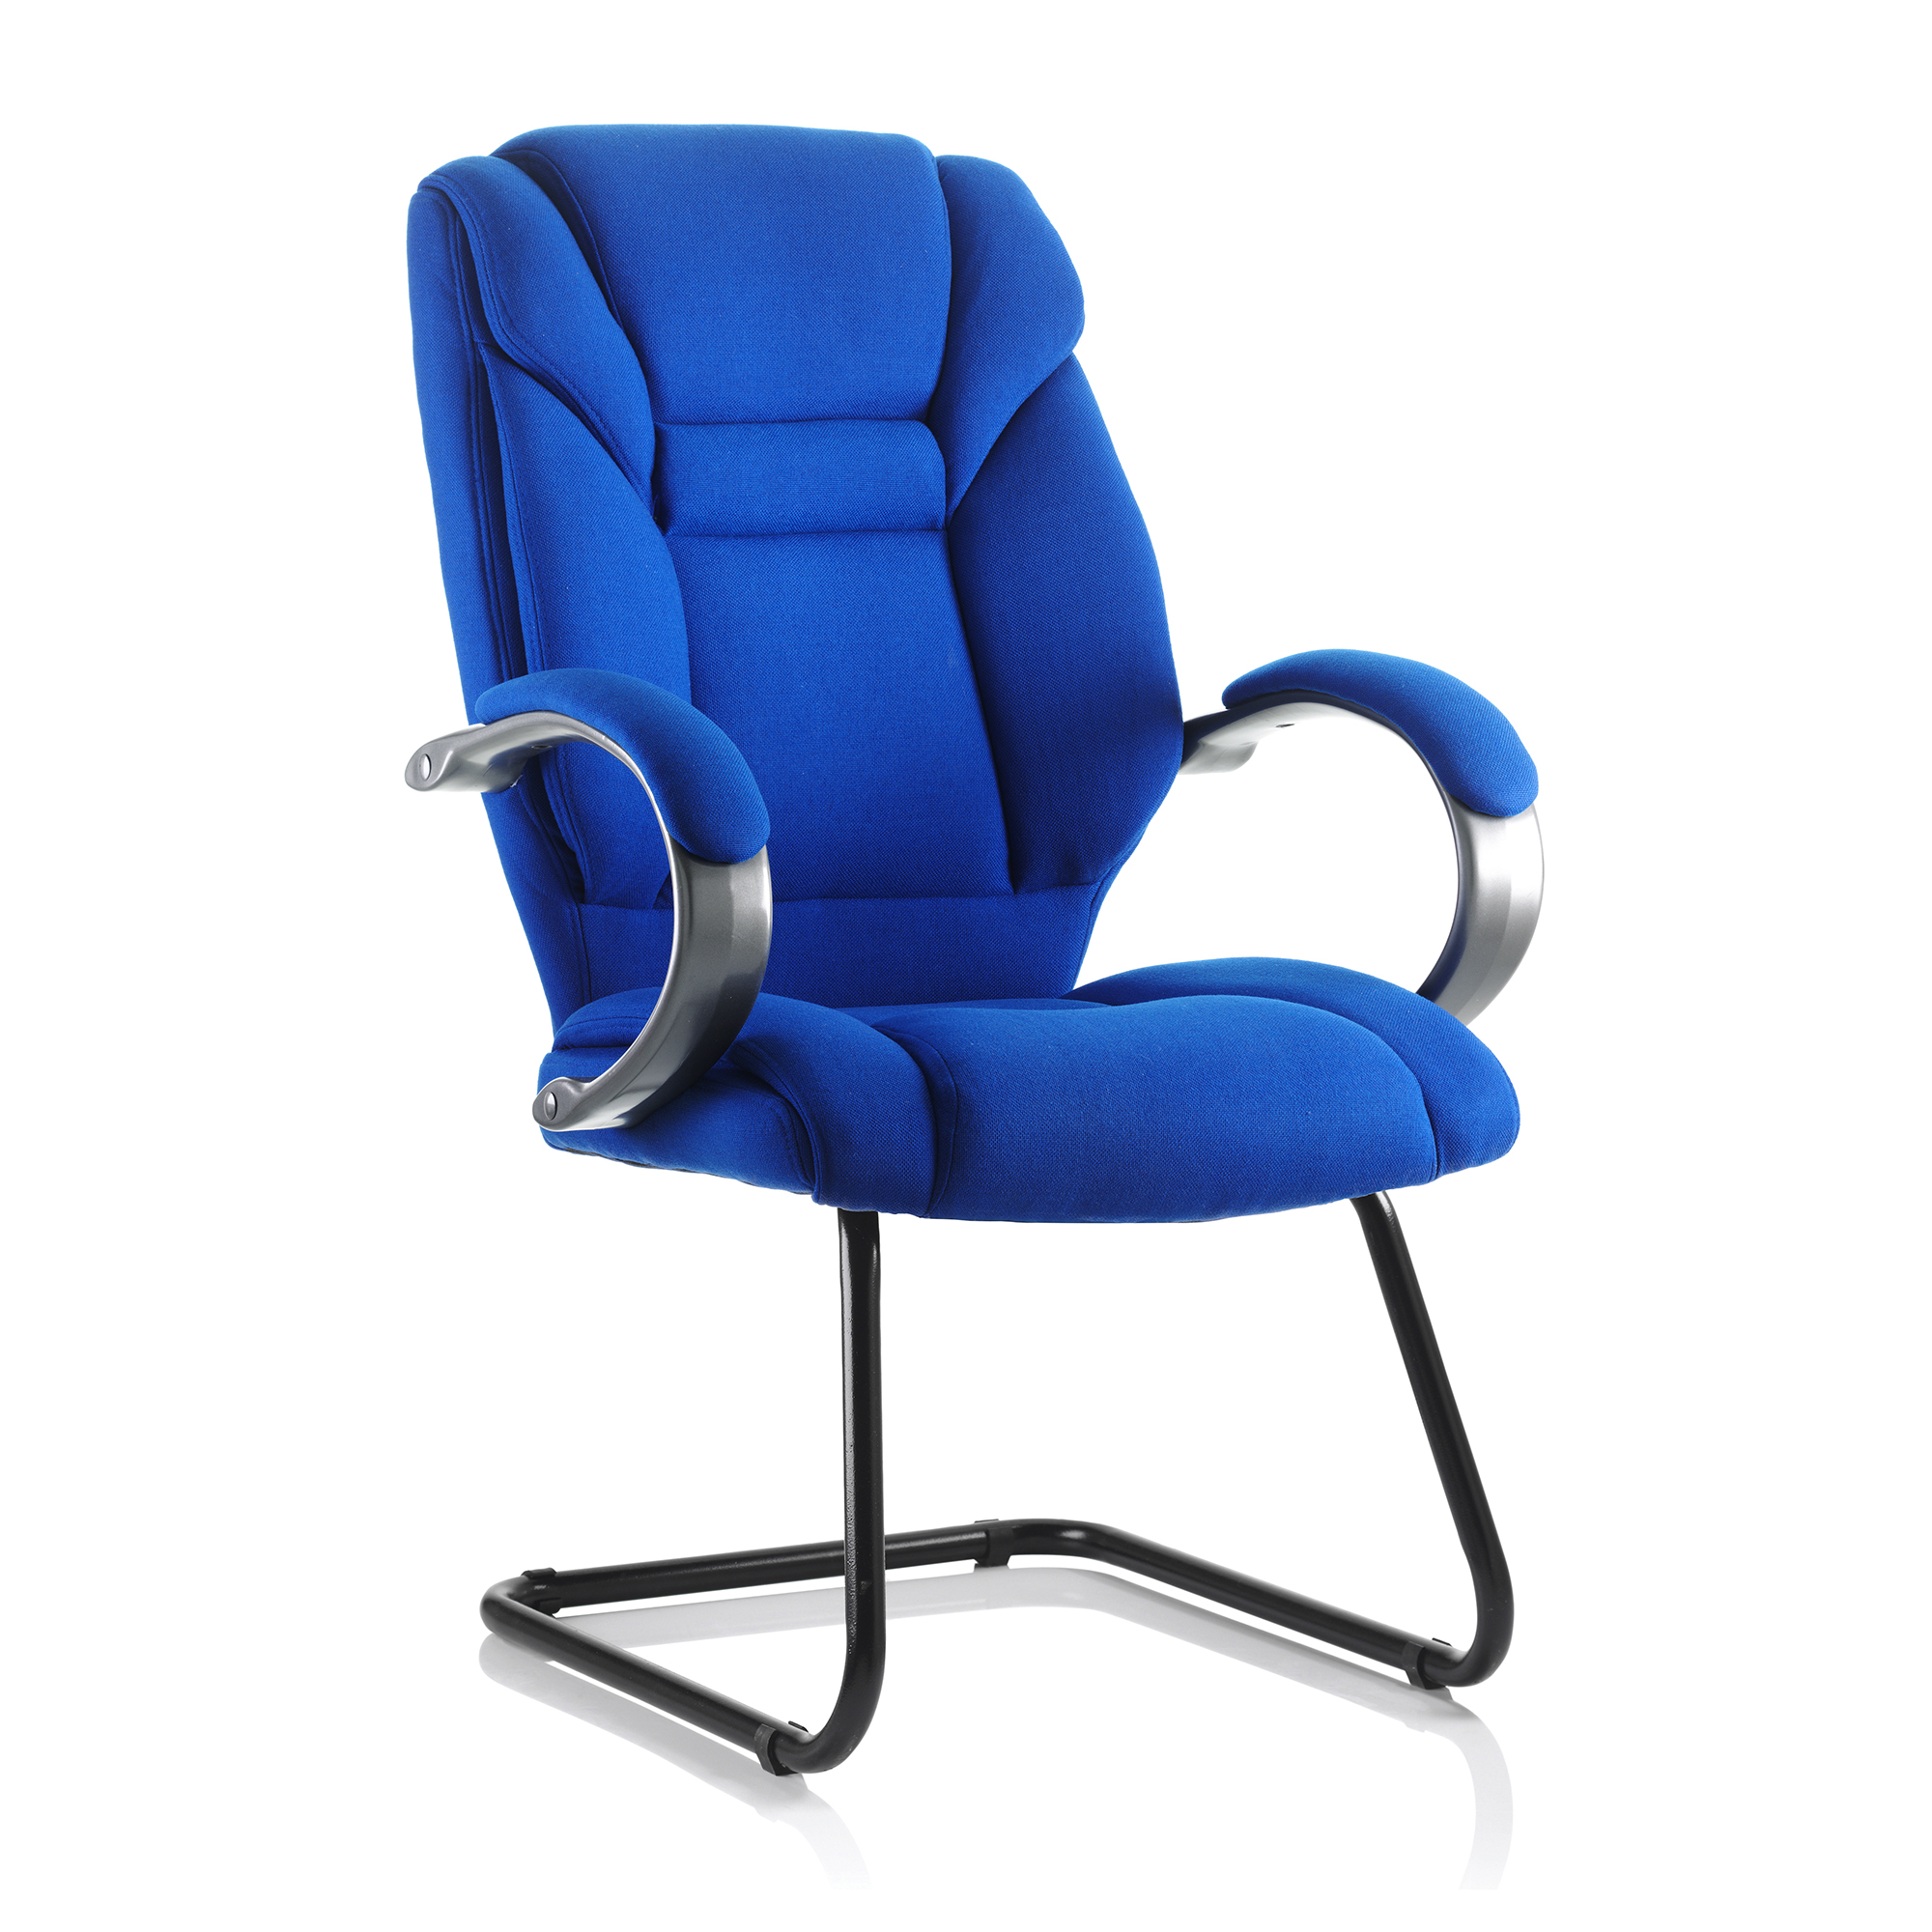 Trexus Galloway Cantilever Chair With Arms Fabric Blue Ref KC0123